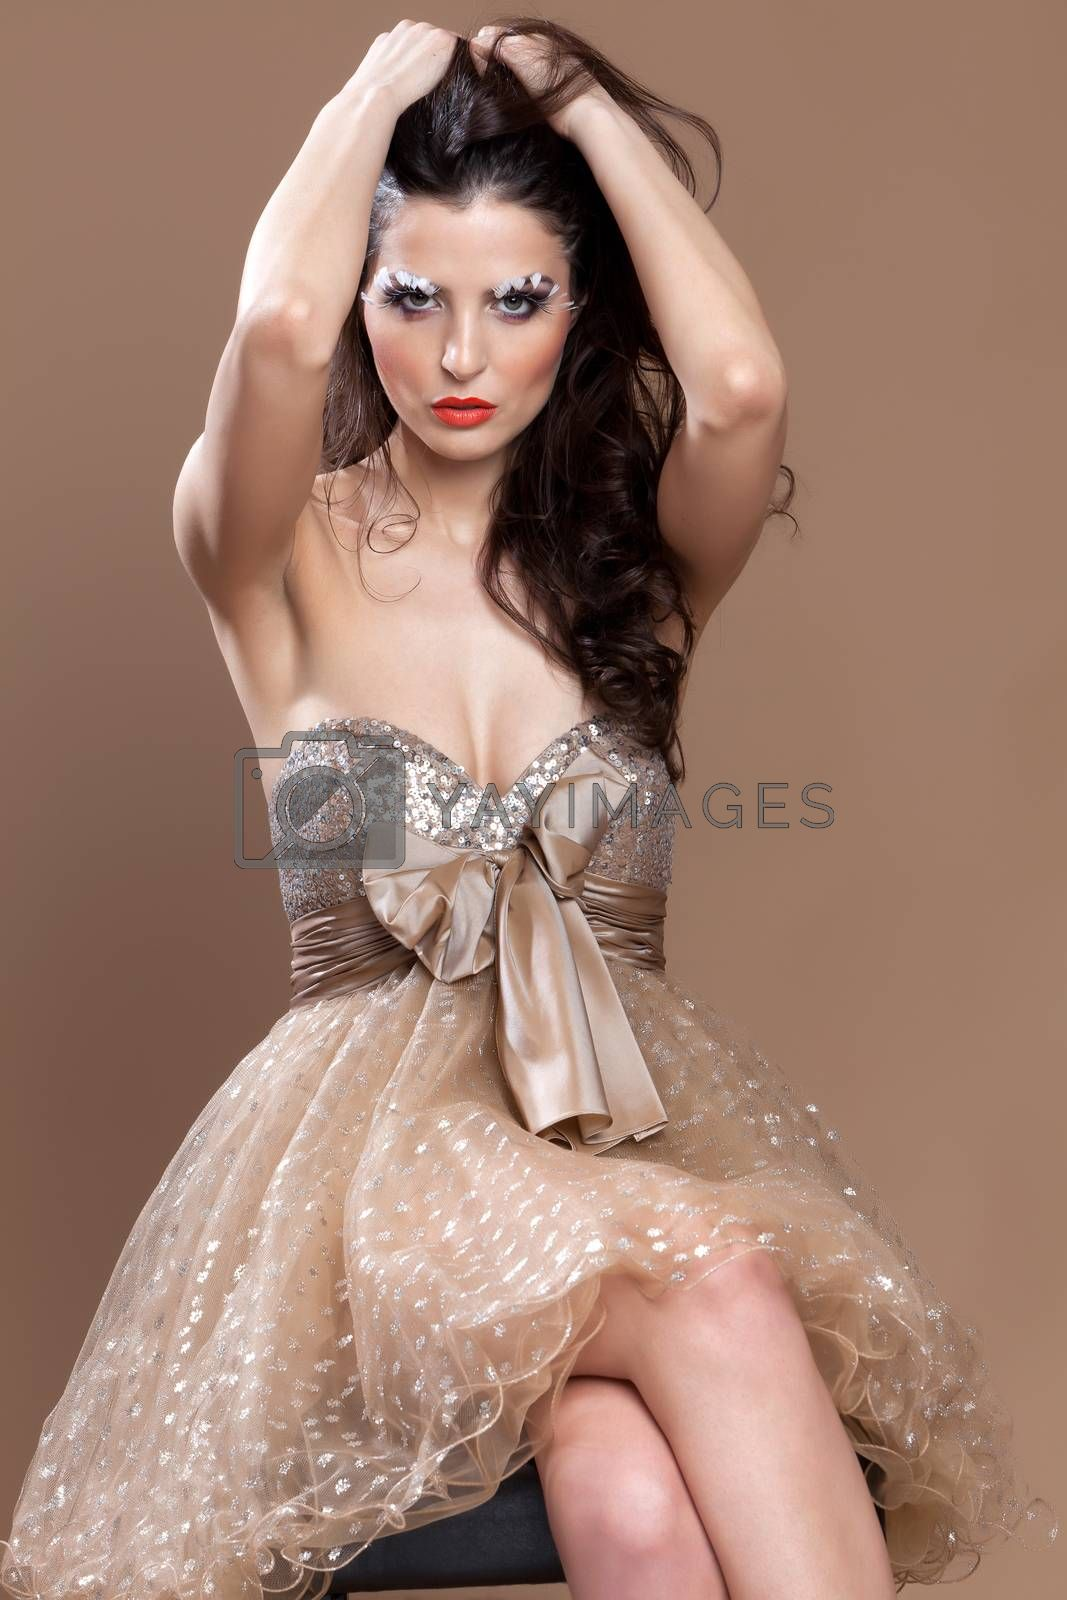 Stunning beautiful brunette sitting in a chair and dressed in an elegant dress, arranging gracefully her hair.